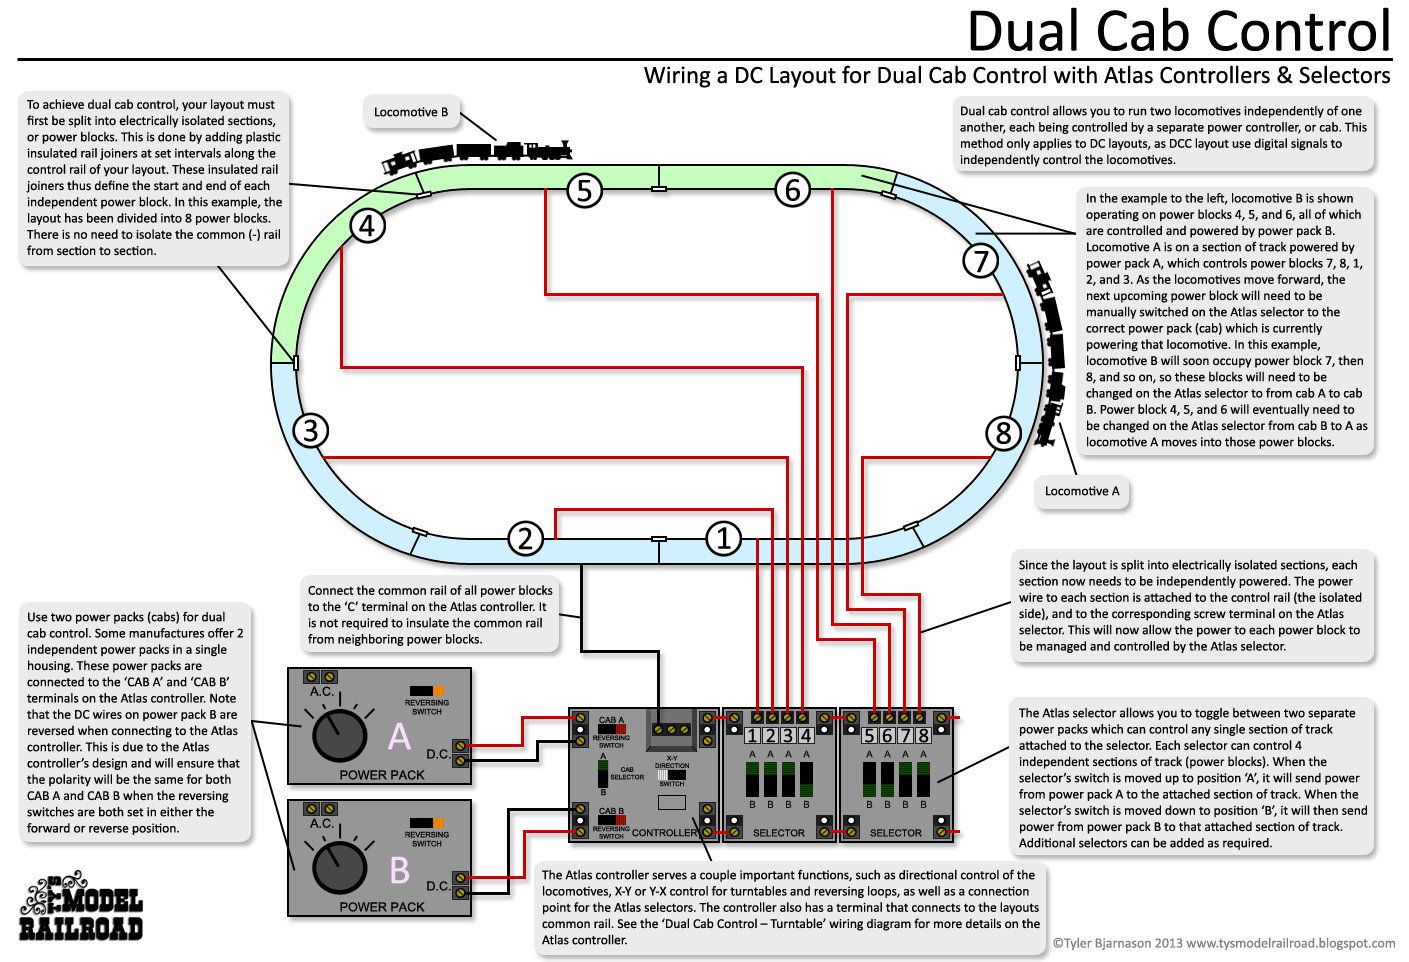 ho railroad wiring block diagram wiring diagram u2022 rh msblog co HO Railroad Dimensions HO Railroad Dimensions